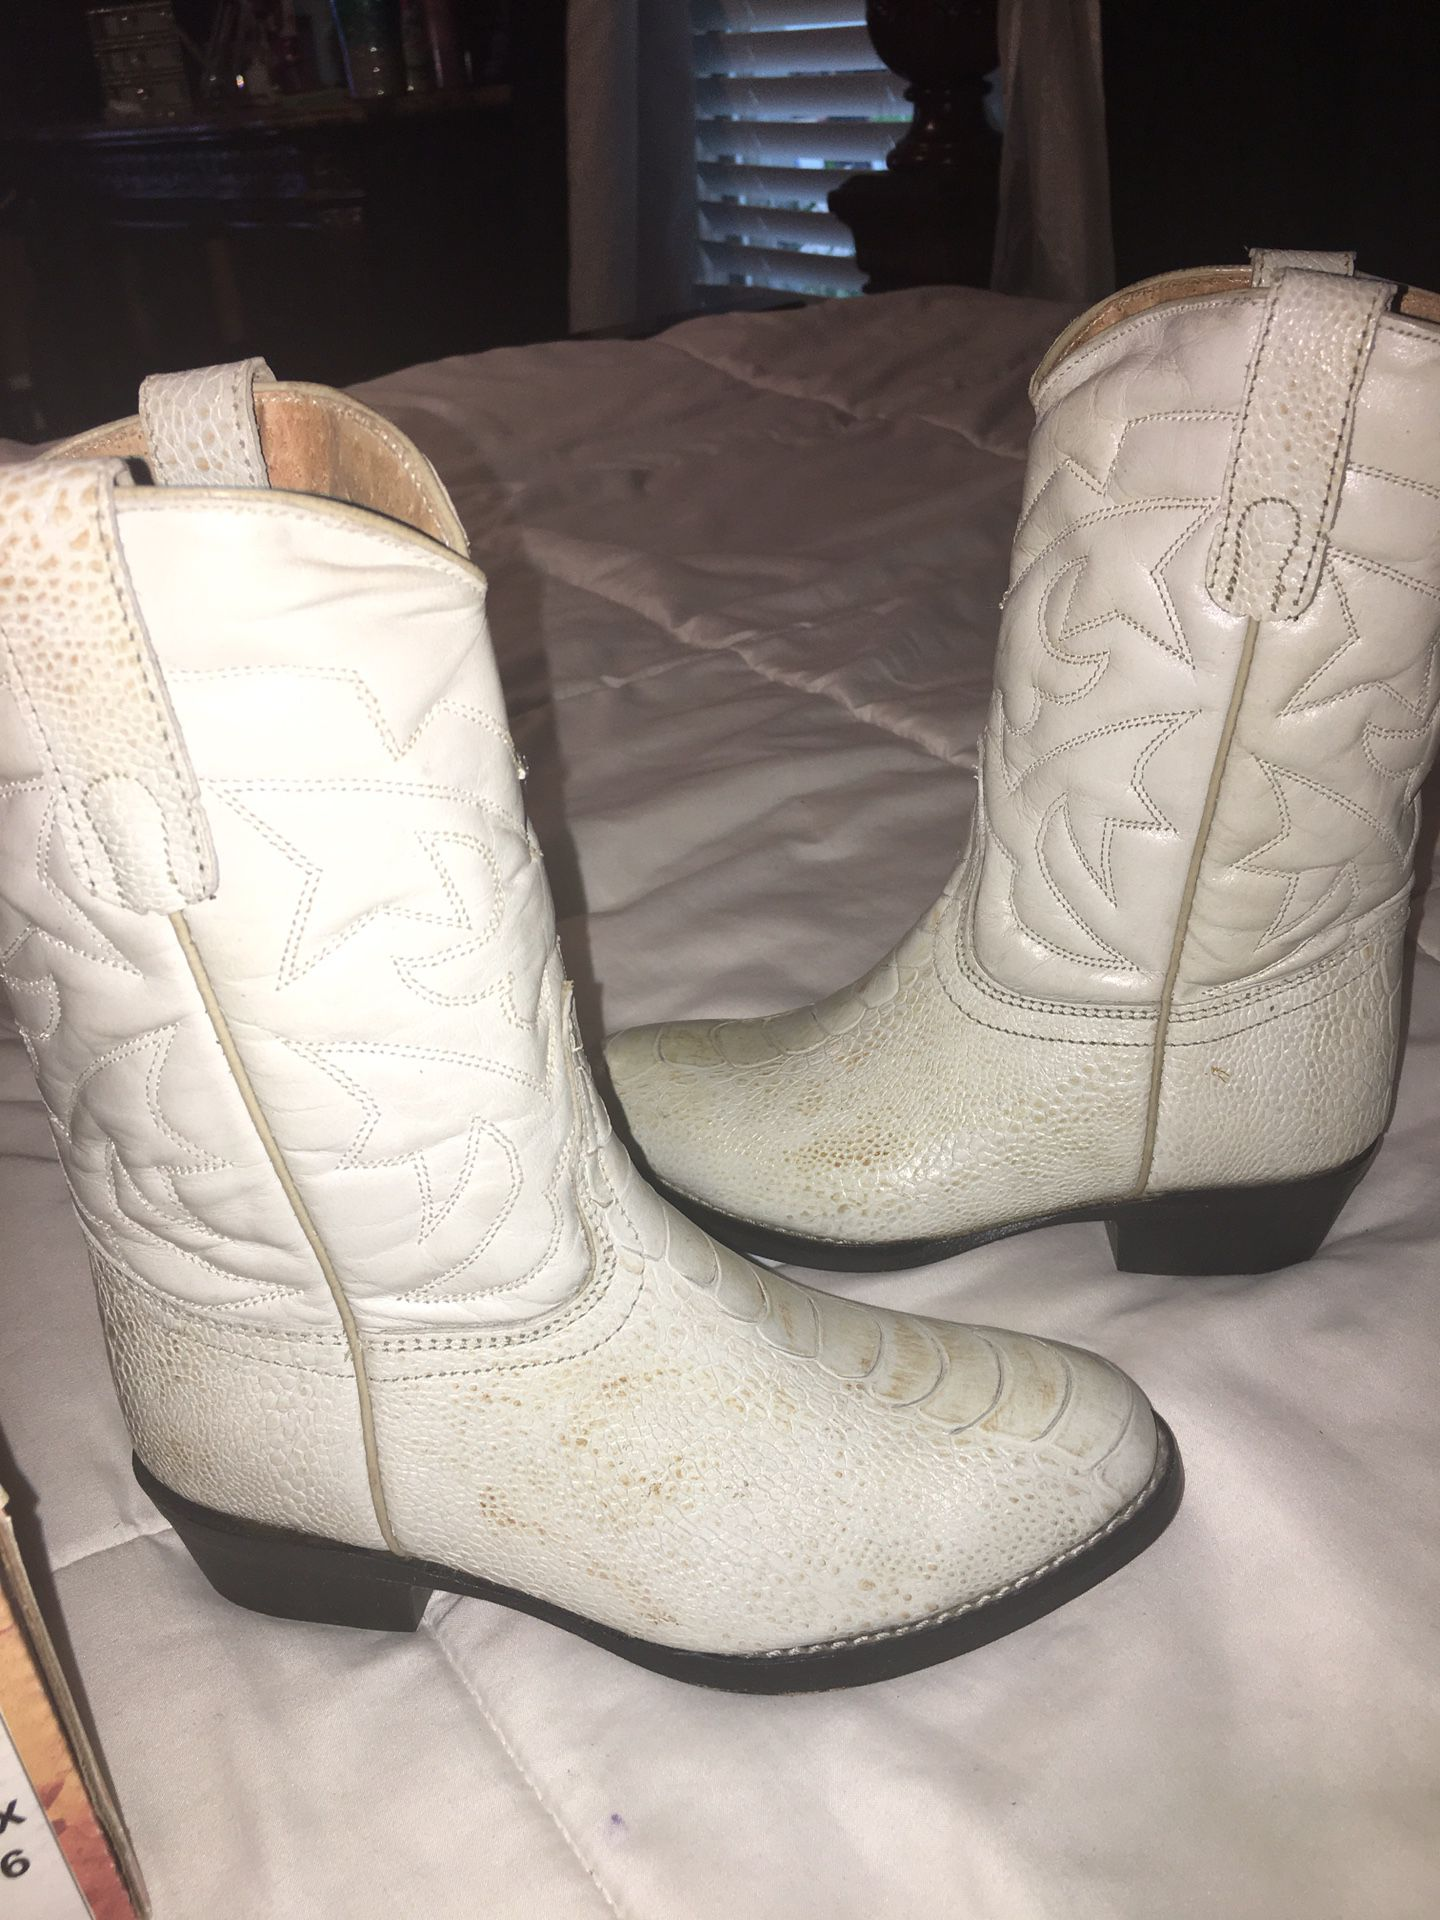 Cowboy boots 12 1/2 for boys